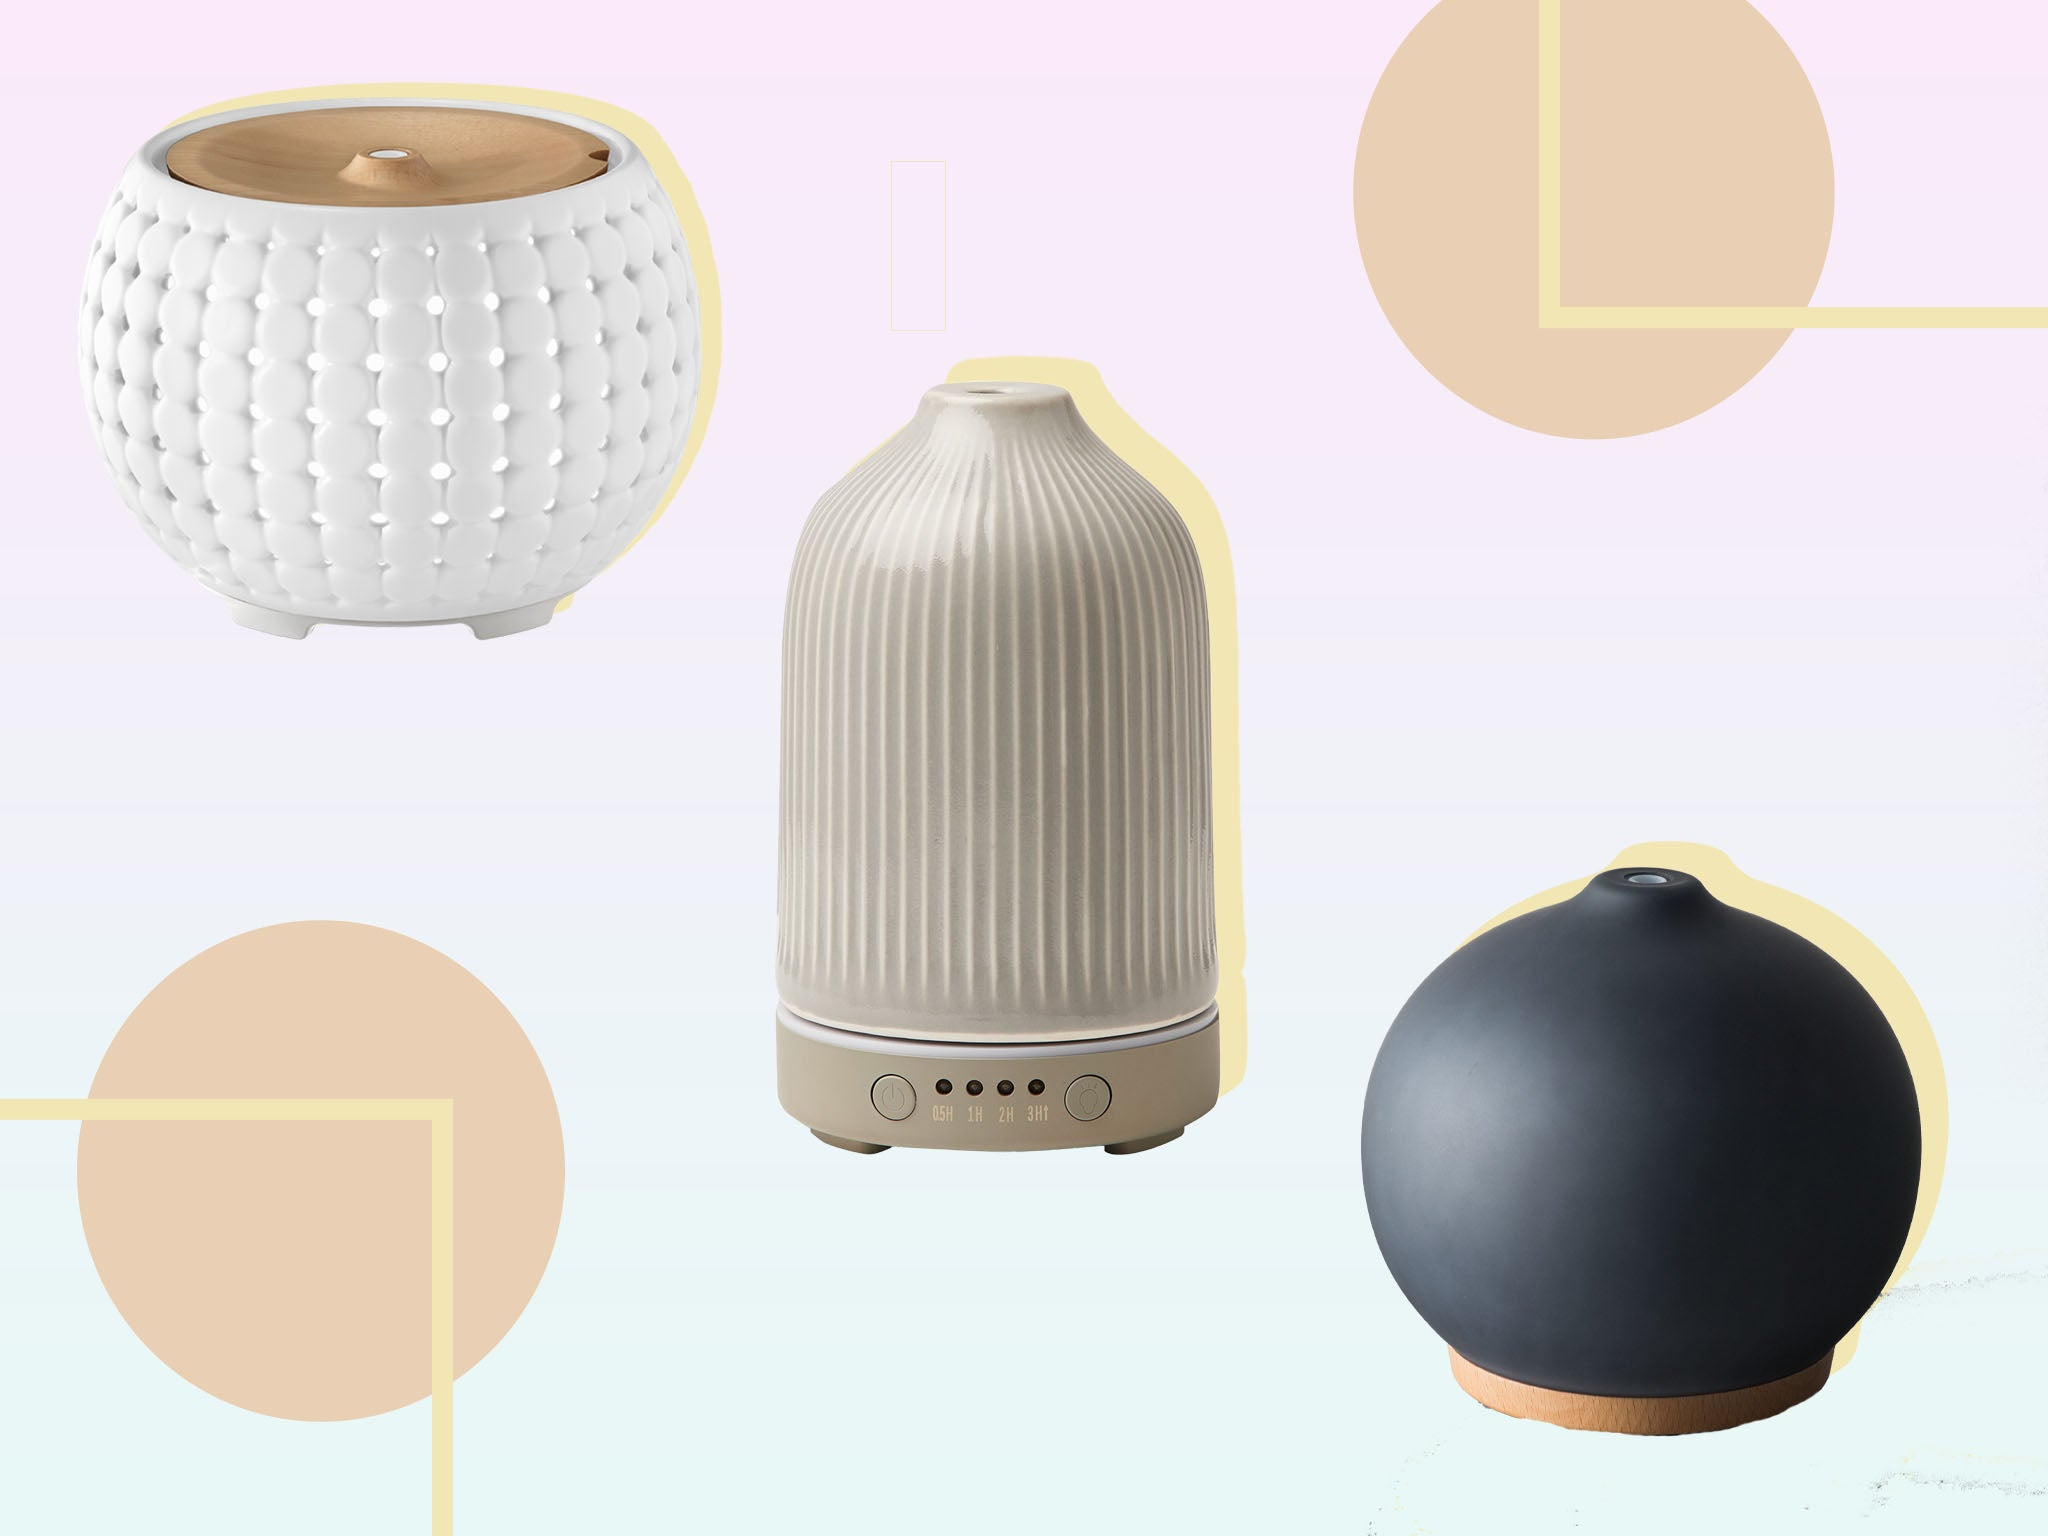 Best Essential Oil Diffuser 2020 That Can Improve Sleep And Reduce Anxiety The Independent